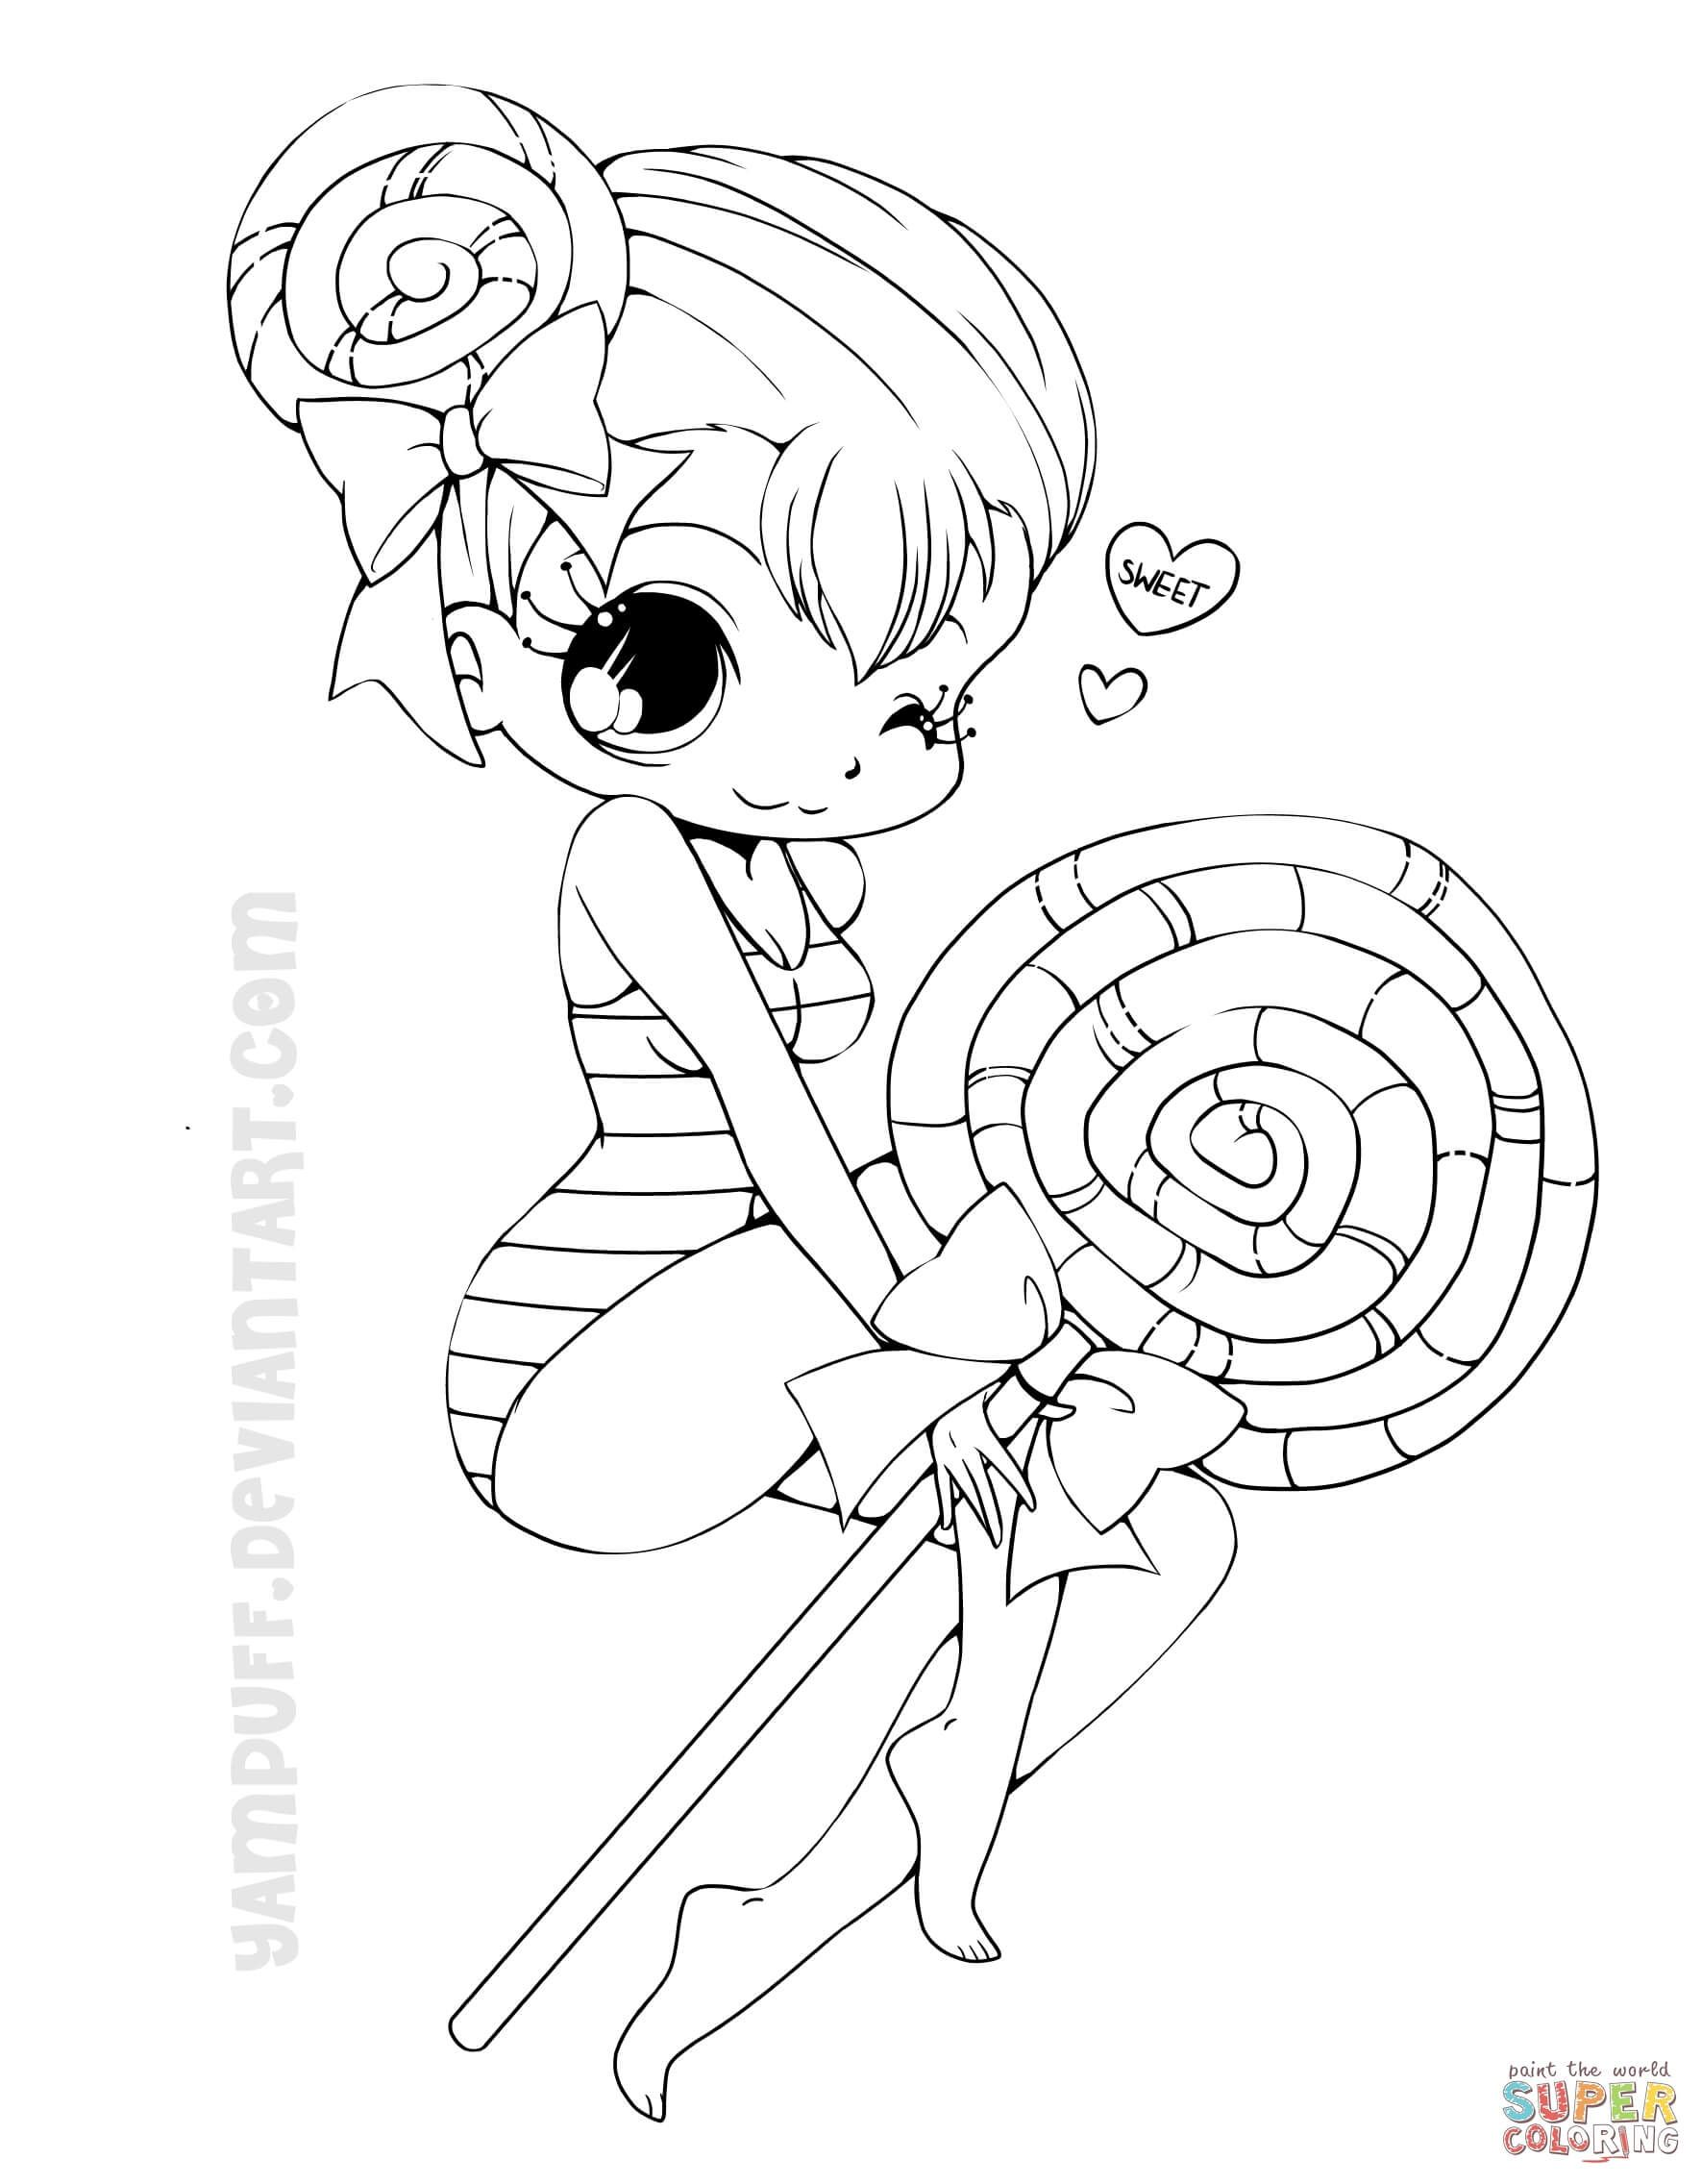 Chibi Lollipop Girl Coloring Page